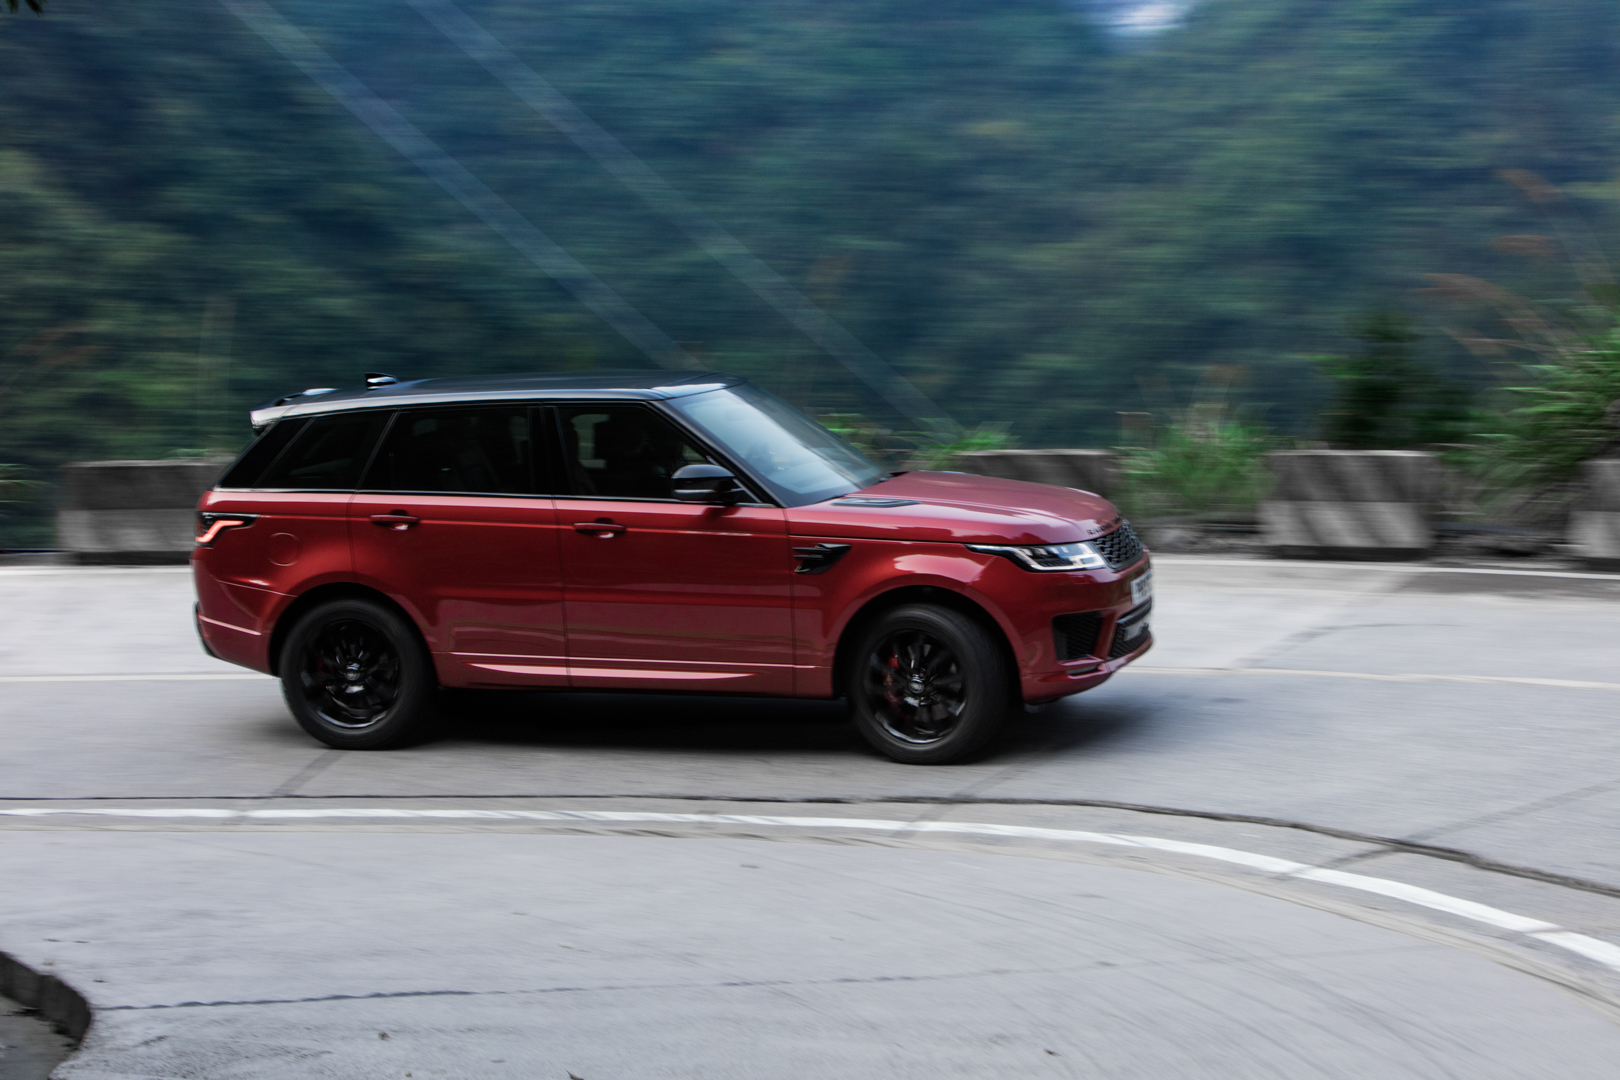 2022 Range Rover Sport might pack a twin-turbo BMW V8